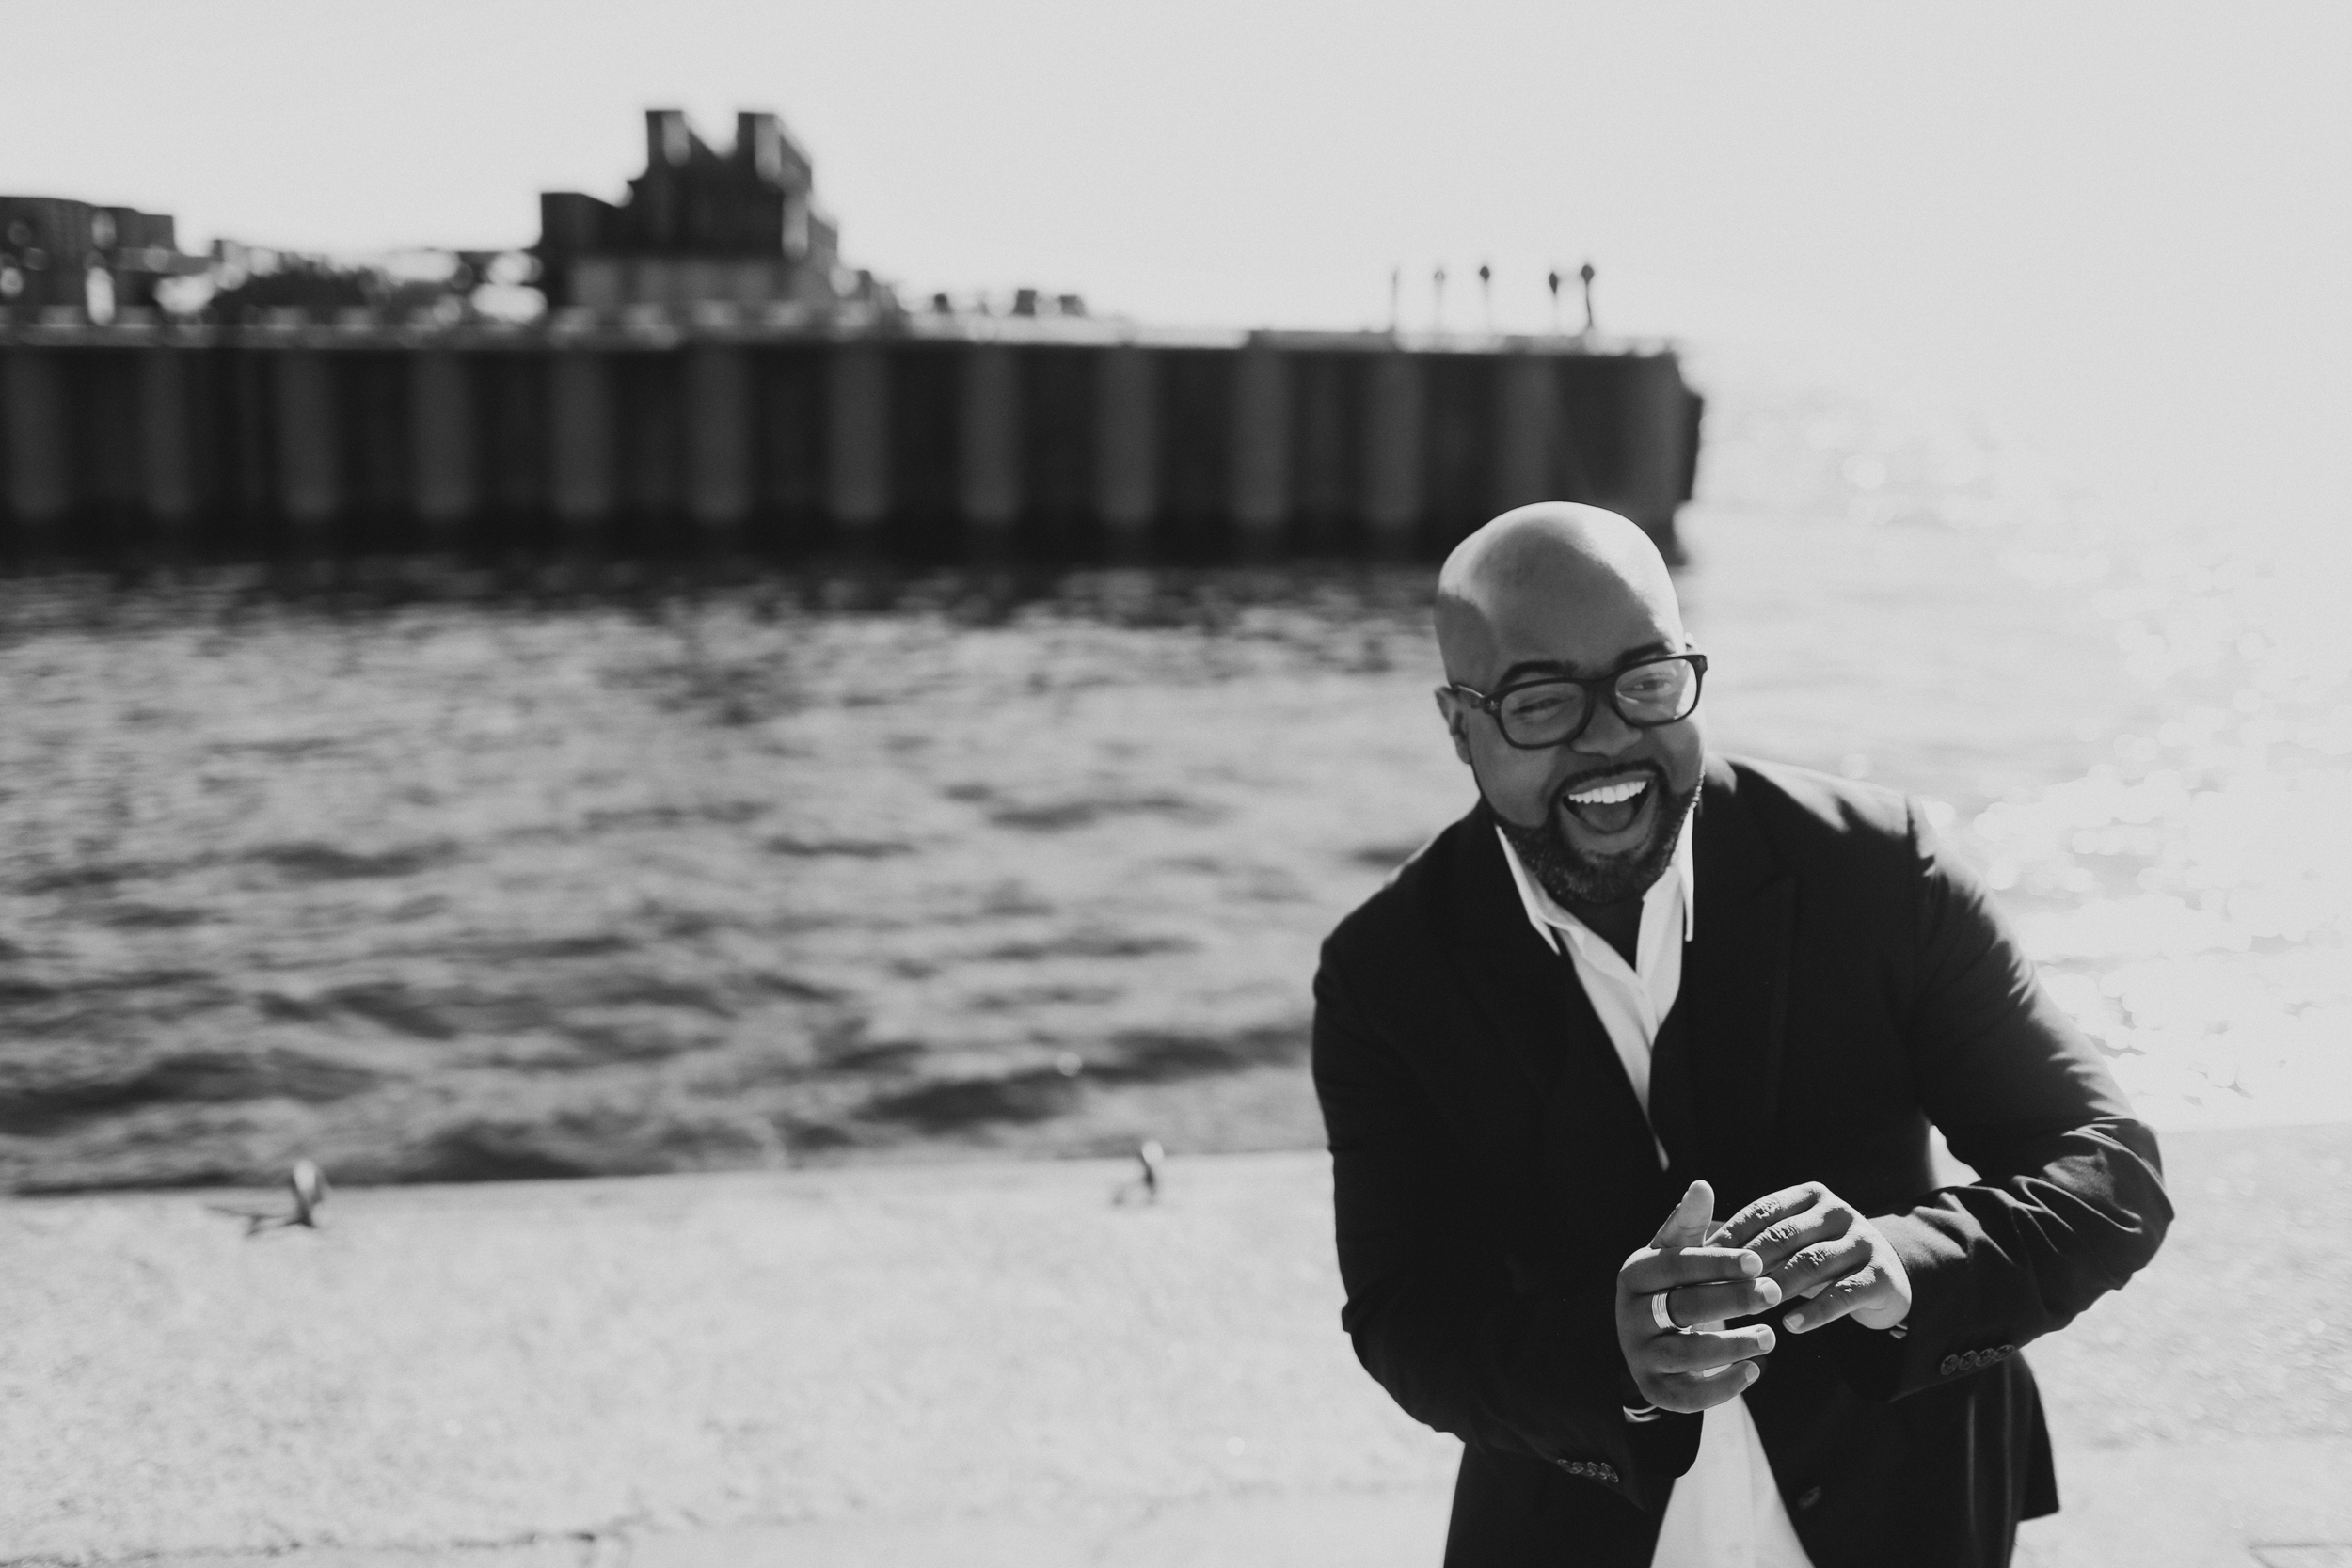 NYC vocalist C. Anthony Bryant laughing during portrait by the harbor.